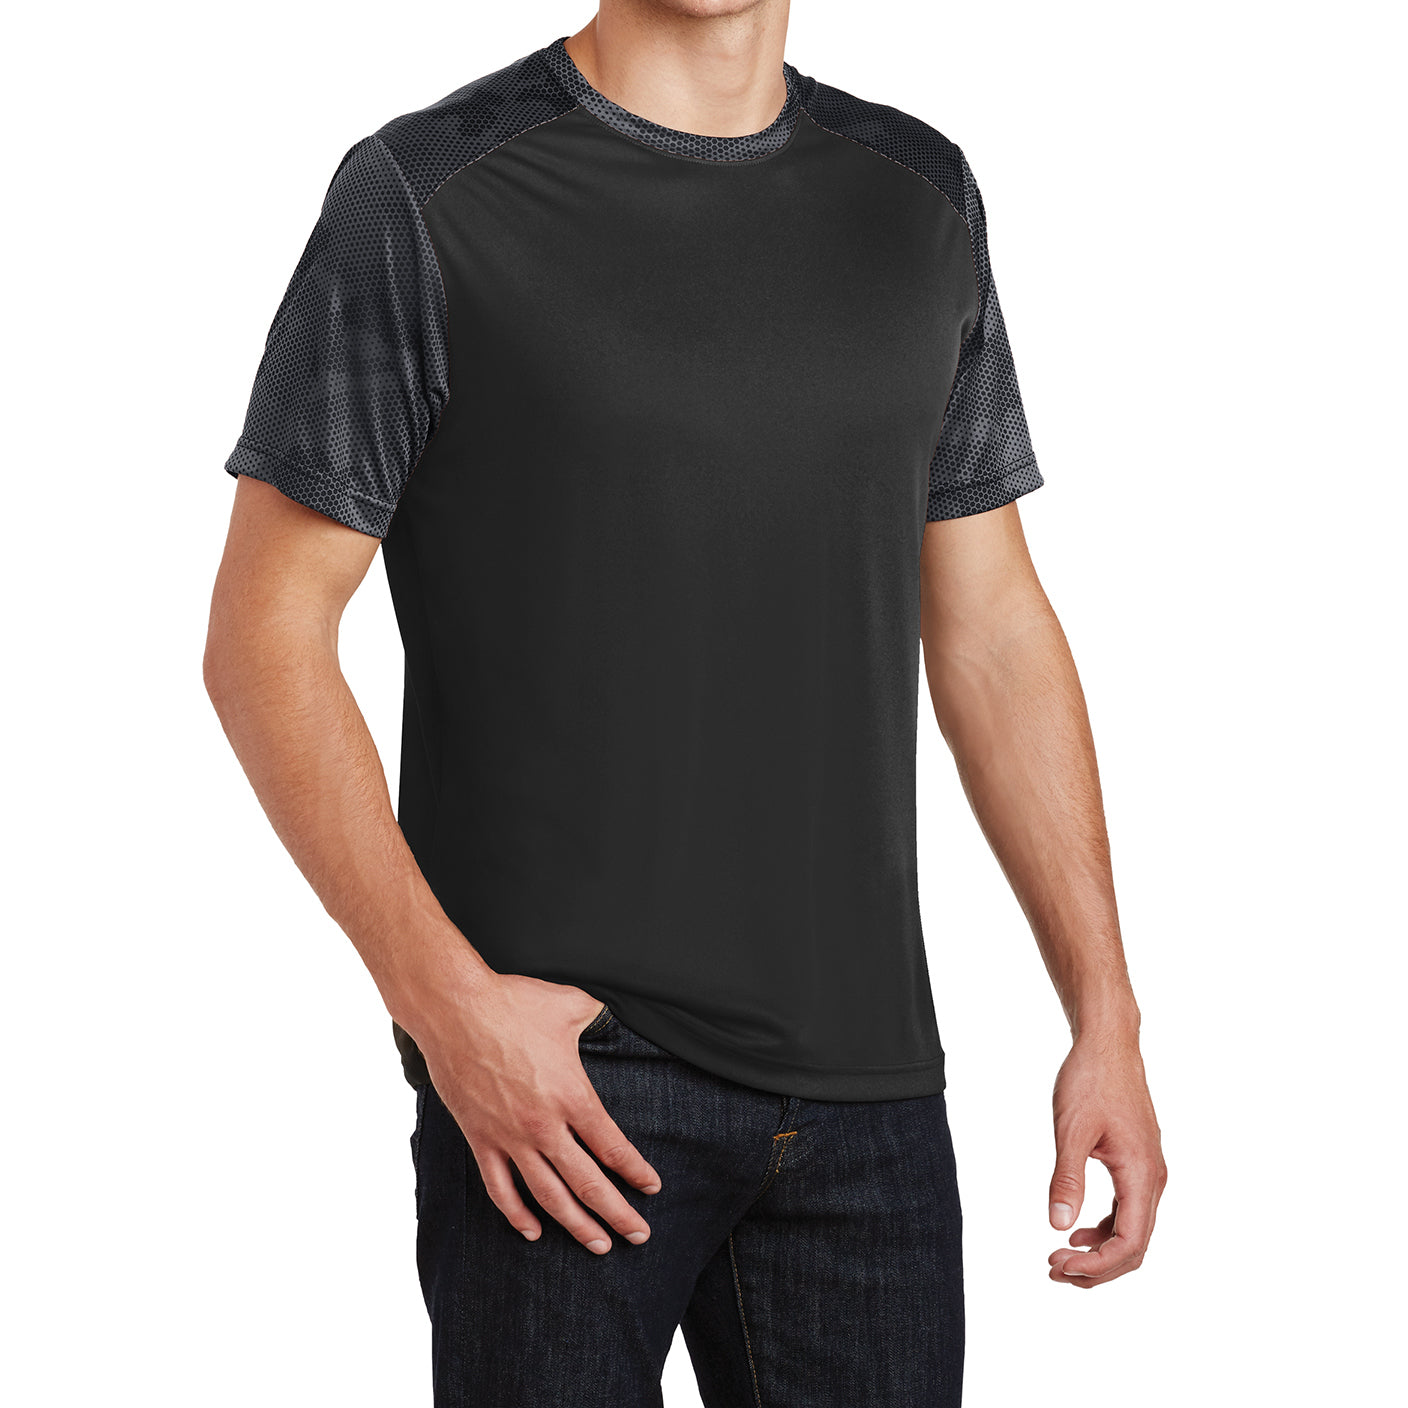 Men's CamoHex Colorblock Tee Shirt Black/ Iron Grey Side